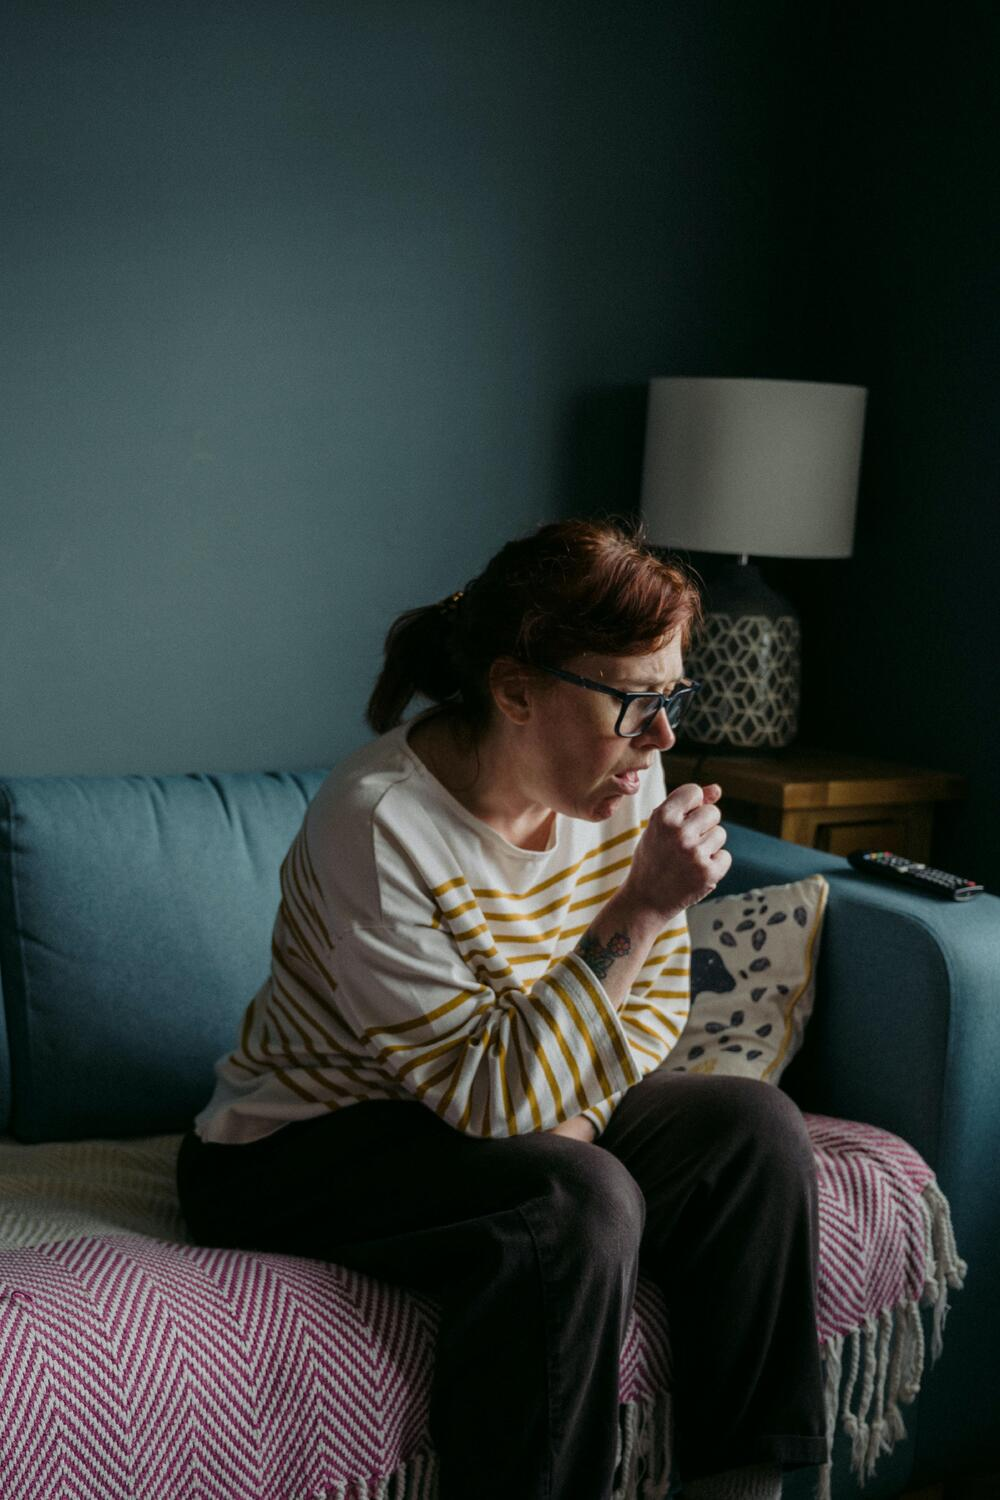 woman sitting on a couch coughing